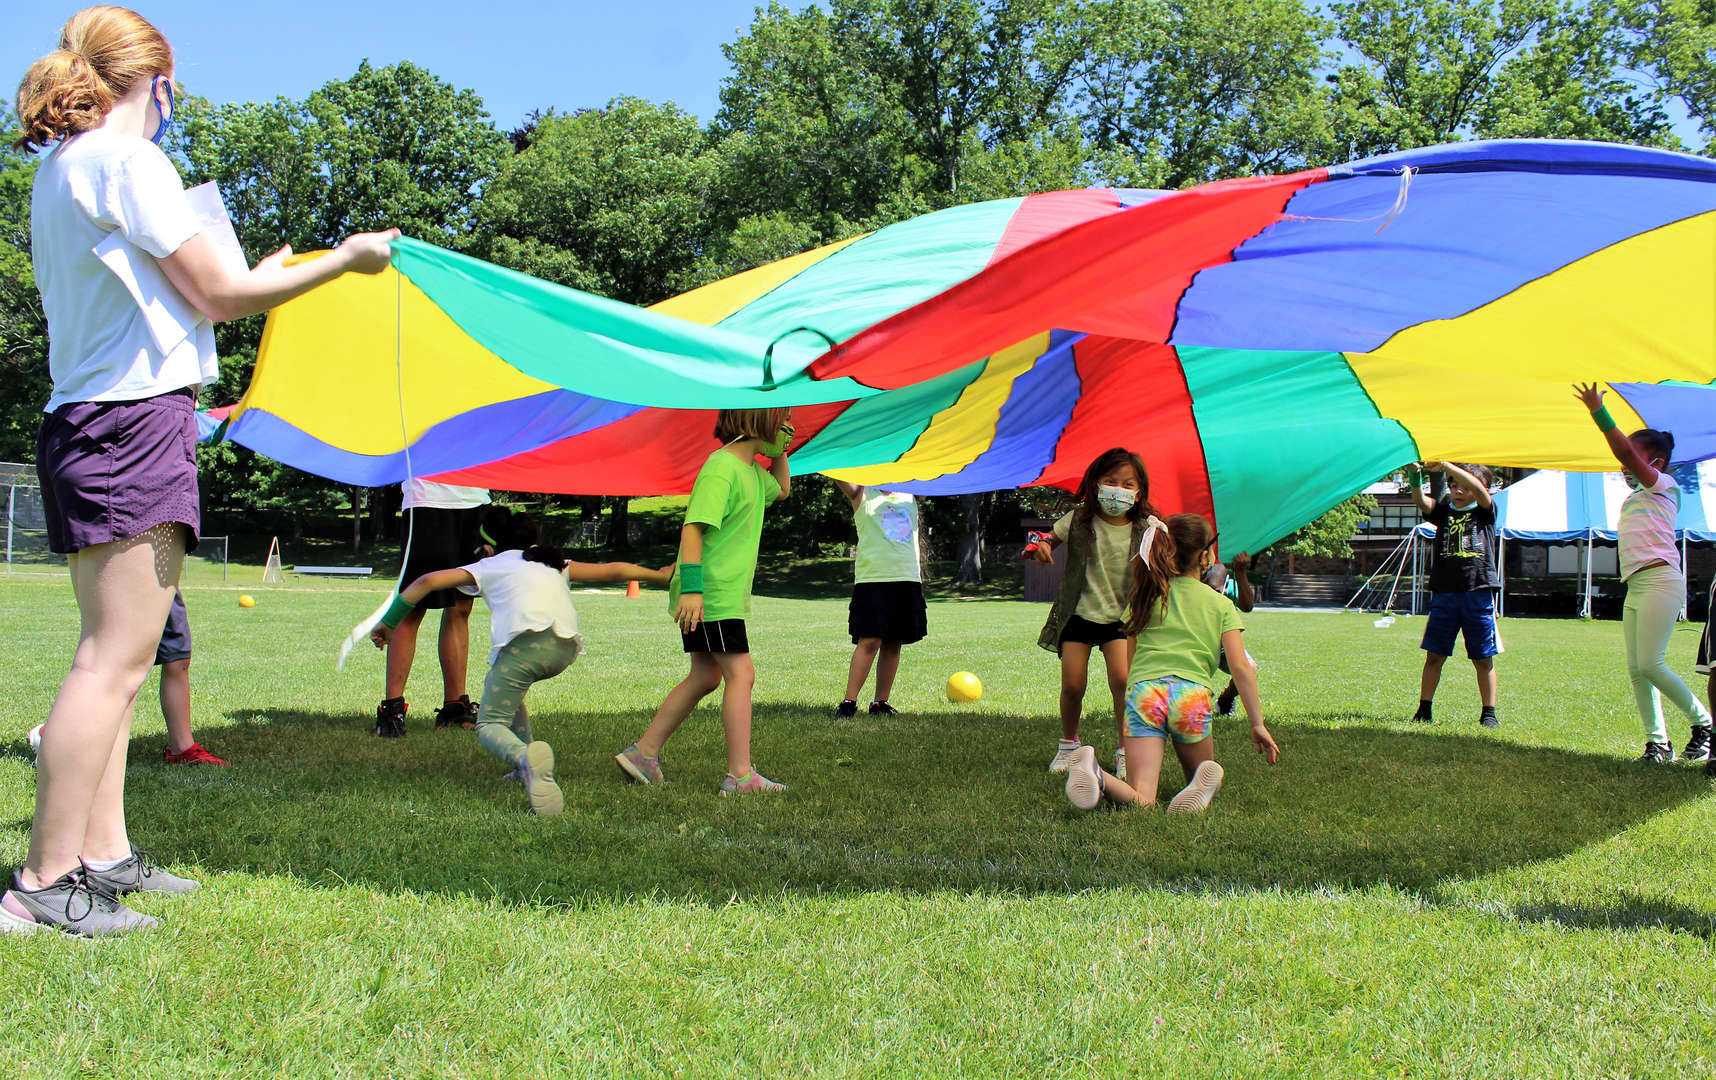 Students playing a game with a colorful parachute.